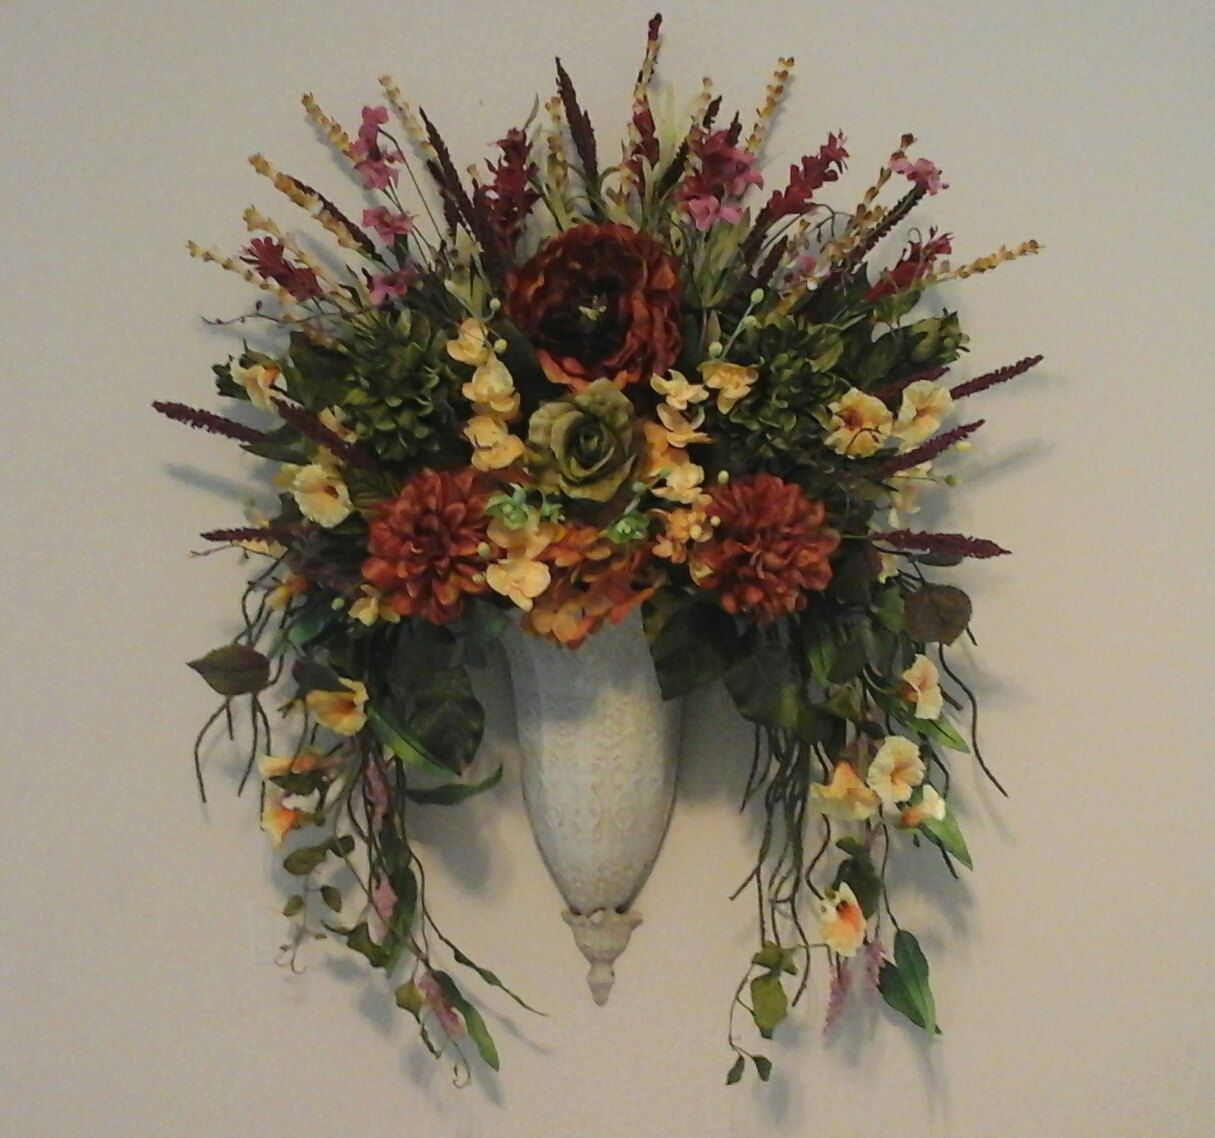 Tuscan Floral Wall Sconce, Fall Wall Planter,Wall Pocket ... on Pocket Wall Sconce For Flowers id=74427